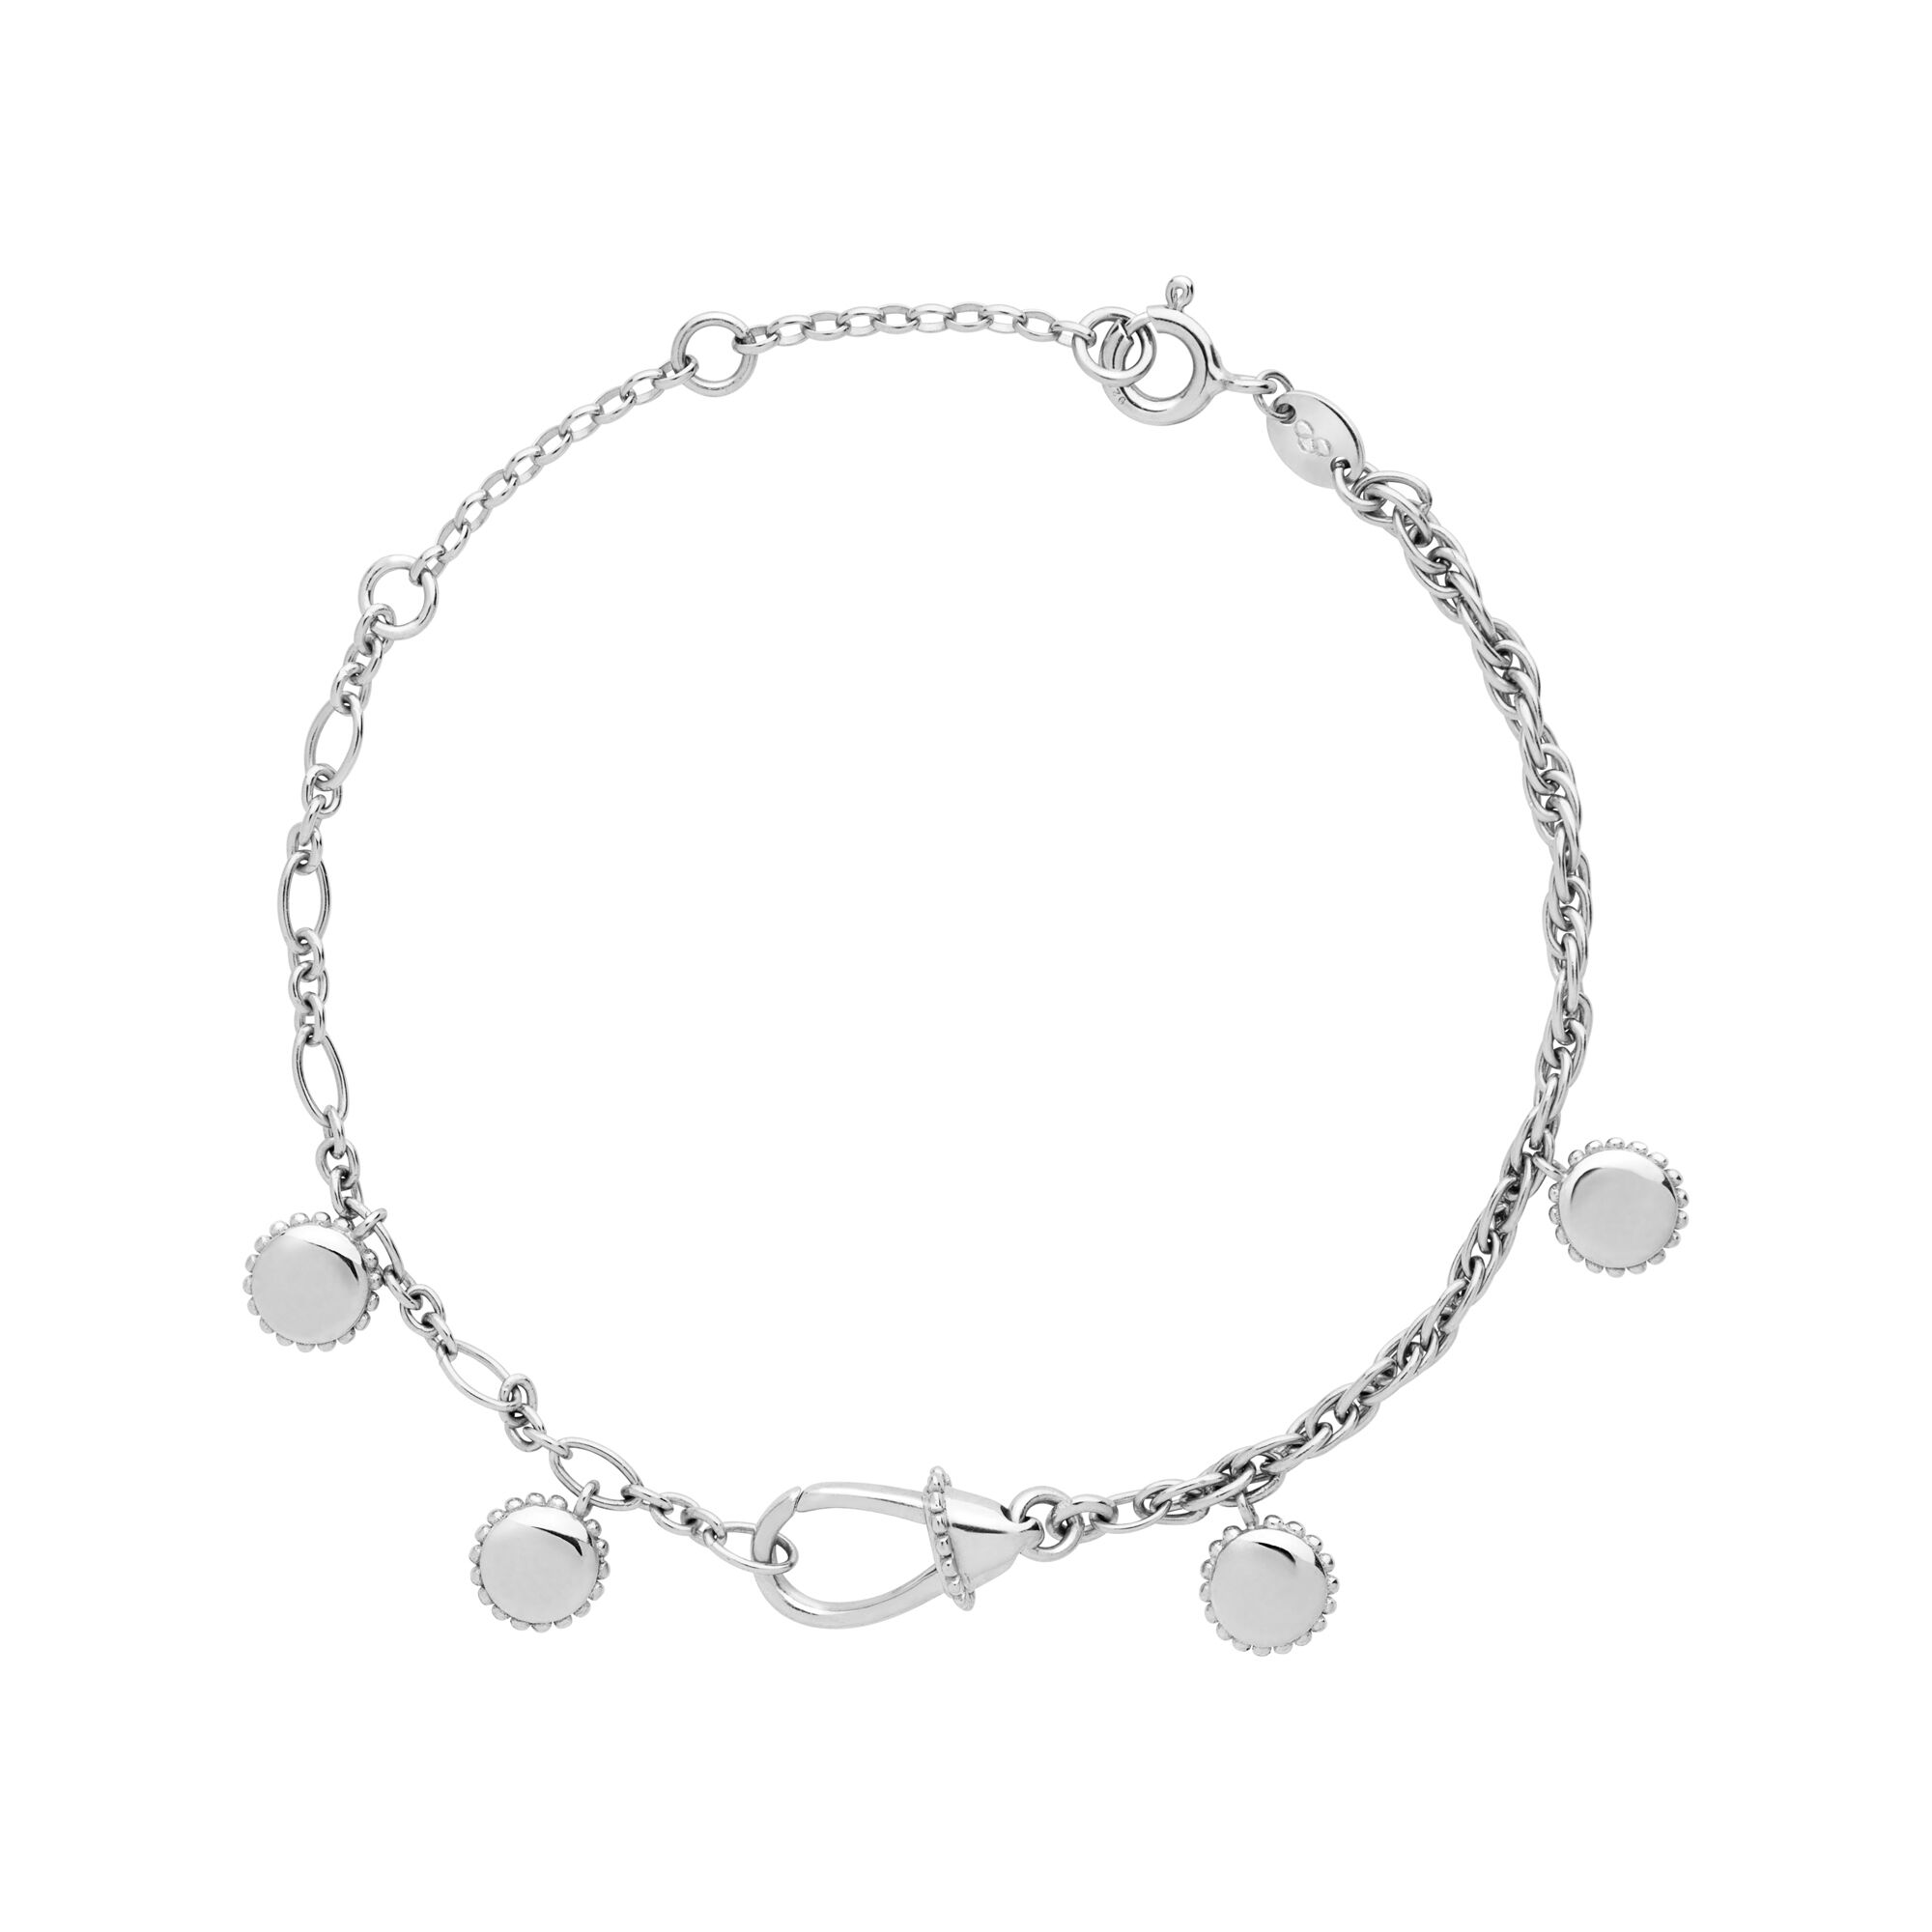 super no stainless galaxie silver freshwater products steel bracelet pearl pure rhodanized parsprototo